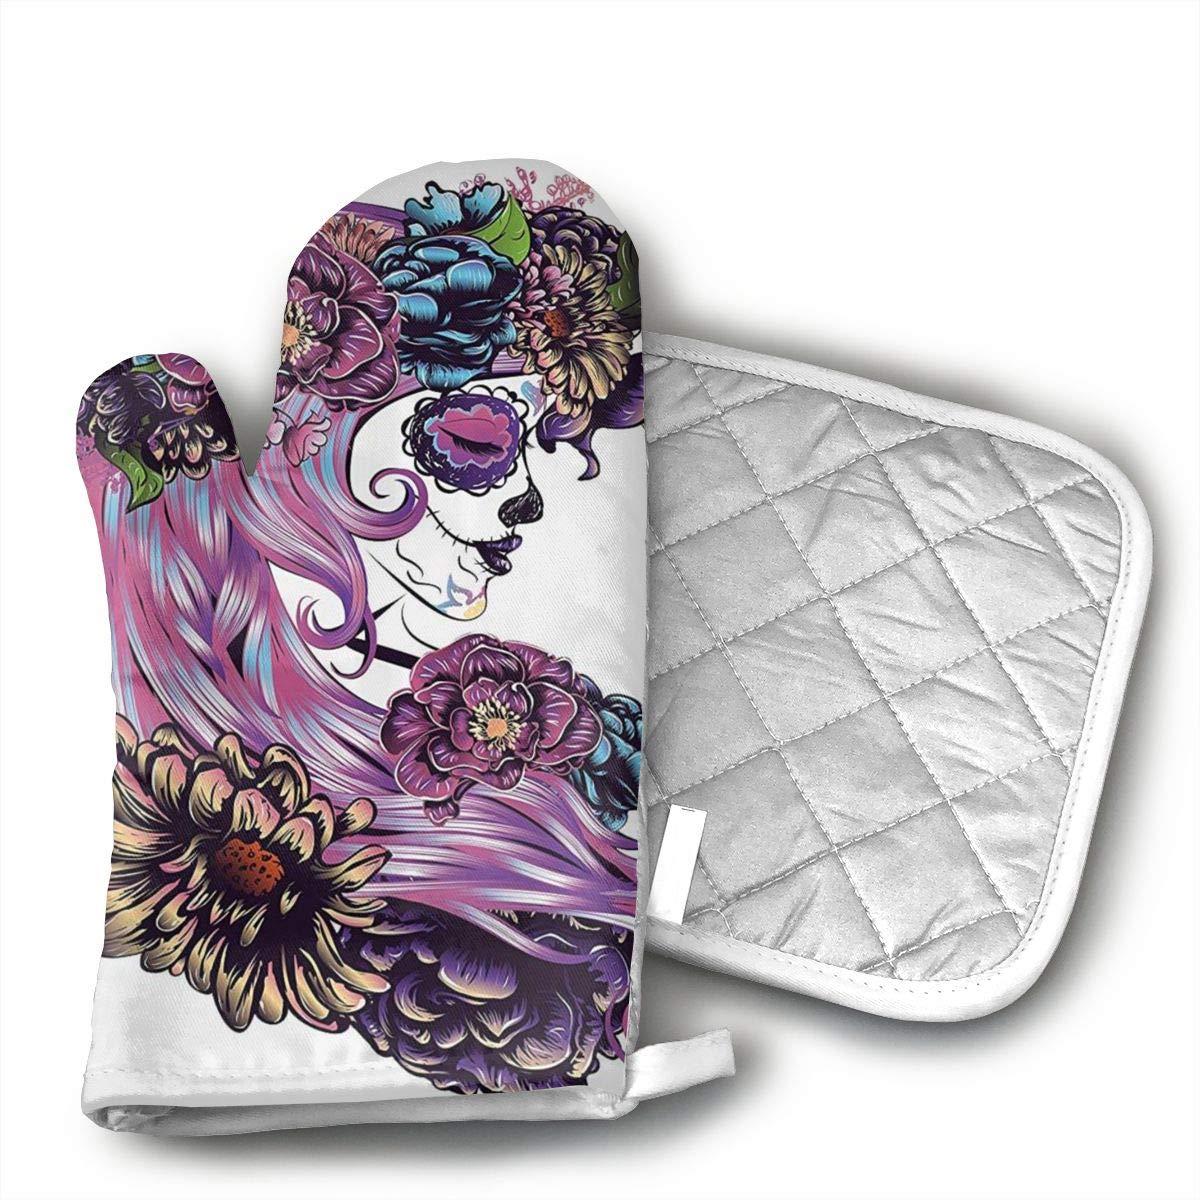 Day of The Dead Illustration with Sugar Skull Oven Mitts, Extra Long Kitchen Oven Gloves, Professional Heat Resistant Baking Gloves,